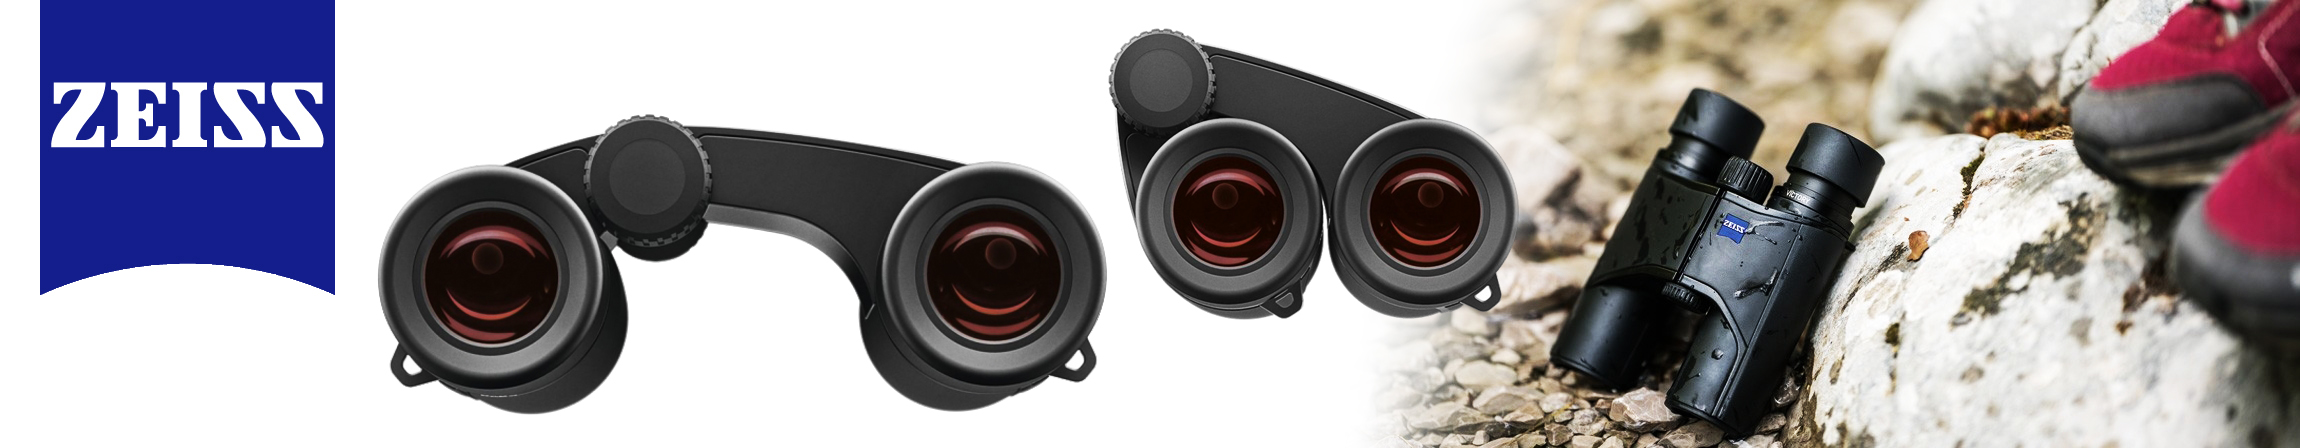 Zeiss_Victory_Pocket_HD_8x25_T_Binoculars